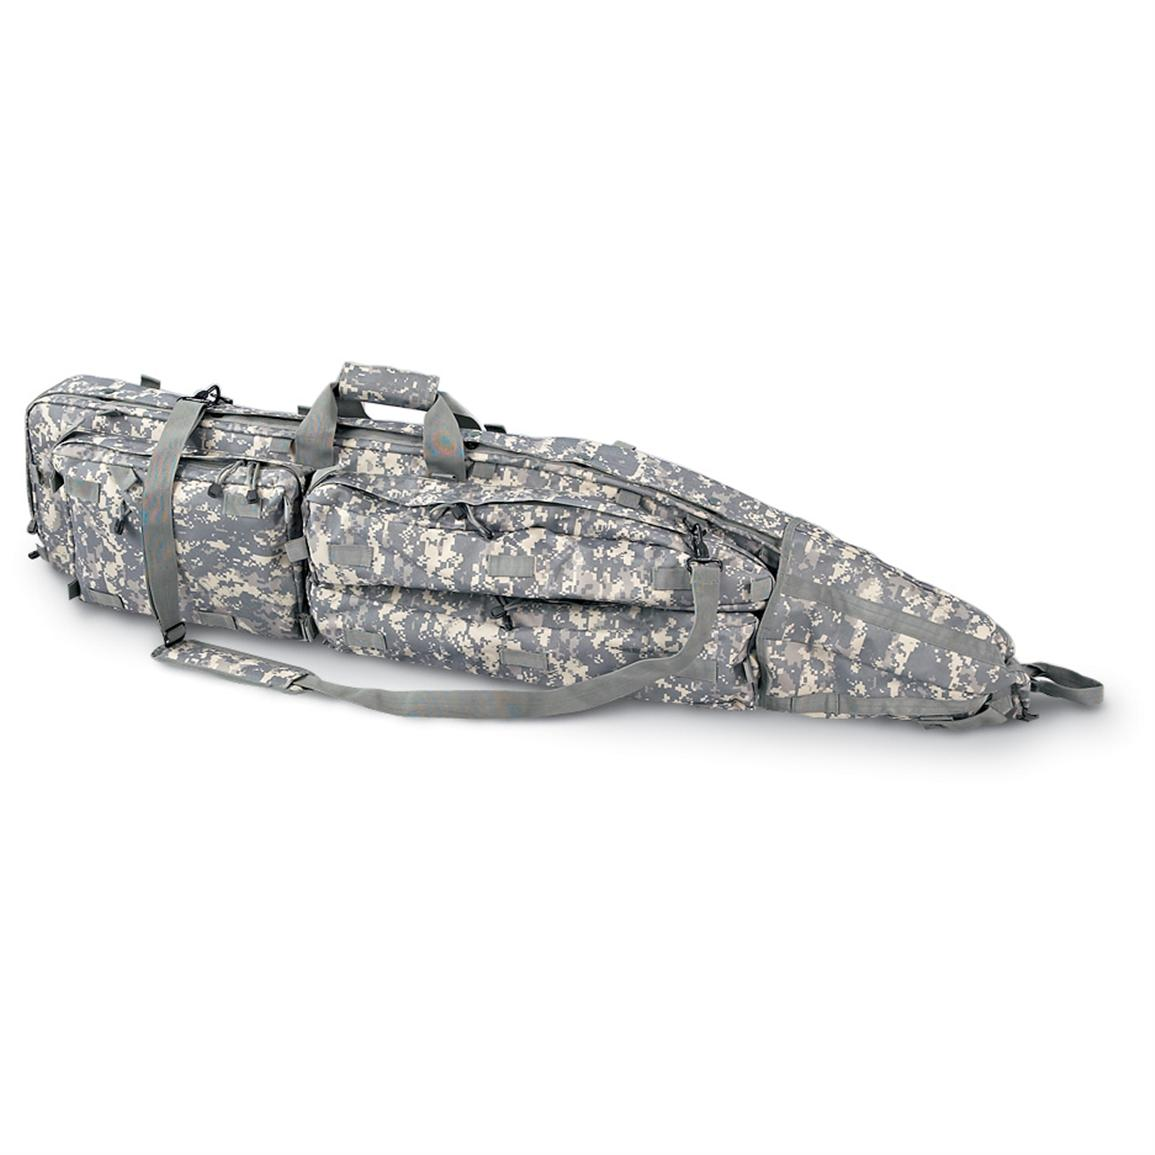 Drag Bag Rifle Case, Army Digital